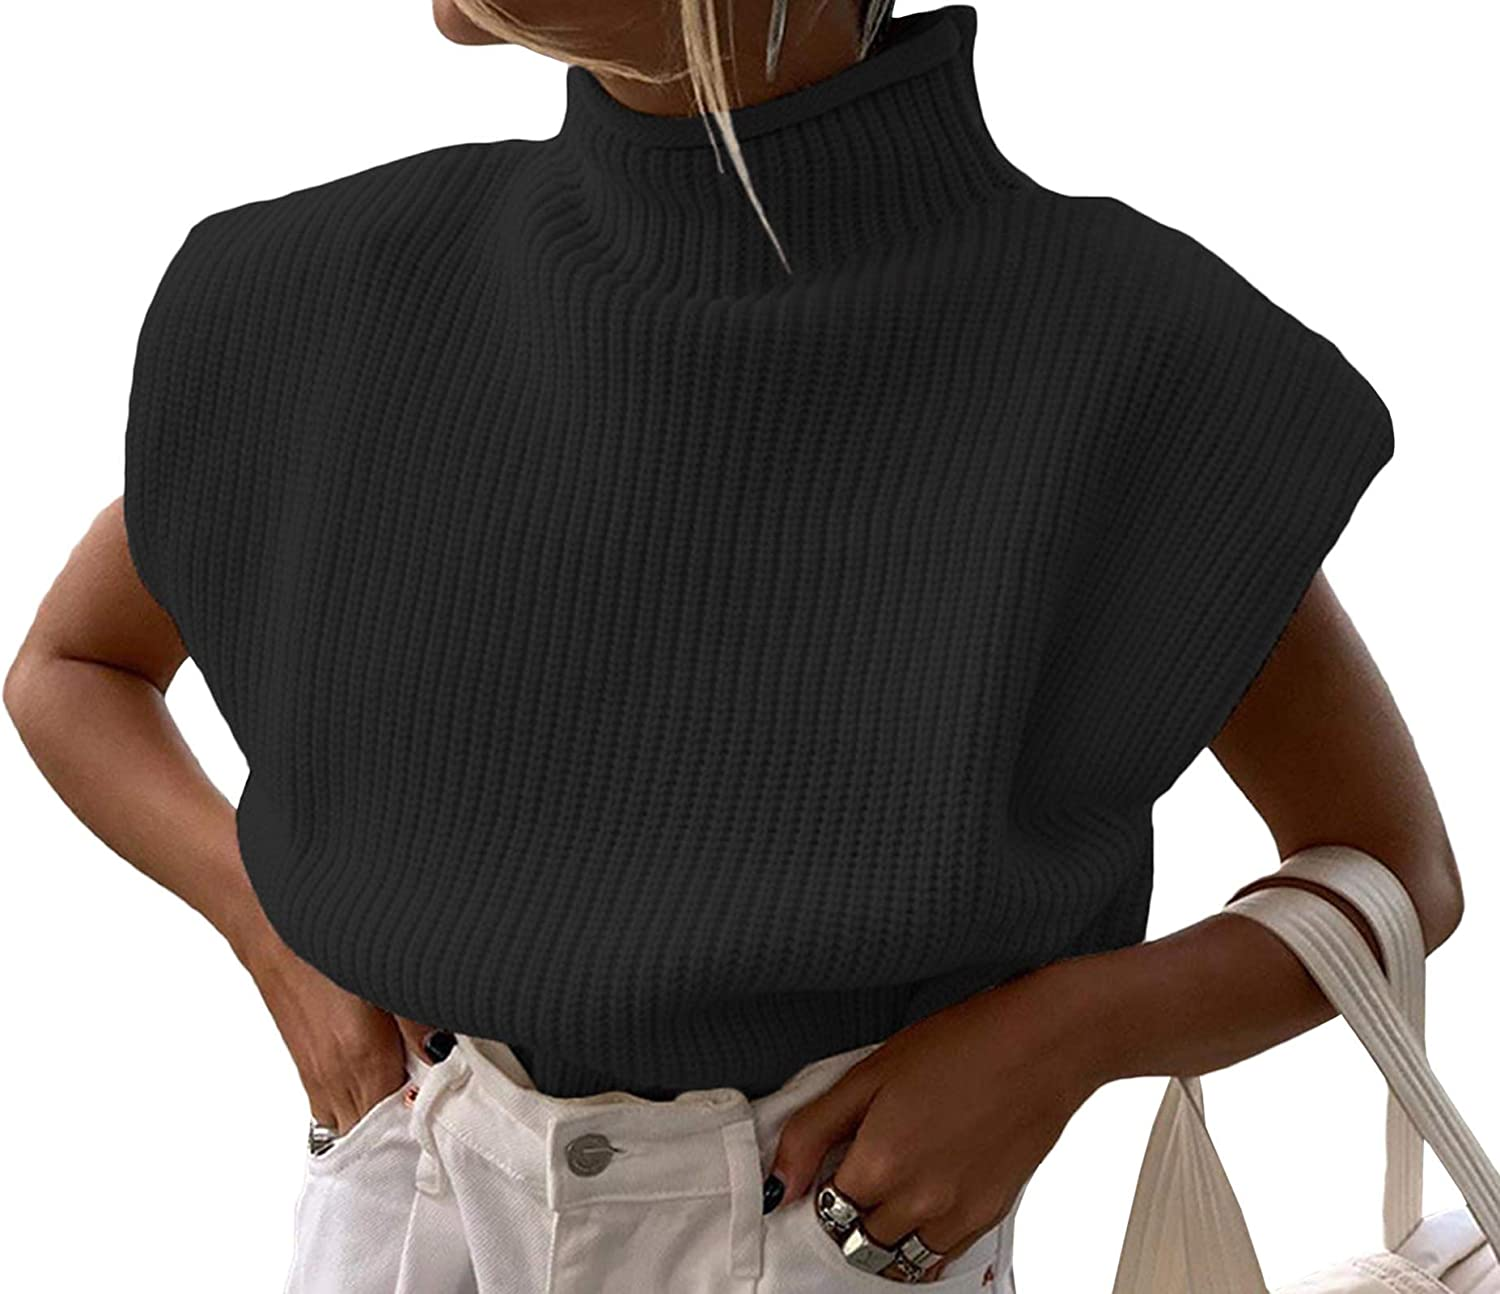 xxxiticat Womens Shoulder Pad Sweater Top Sleeveless Turtleneck Wide Shoulder Knitted Sweater Jumpers Chic Pullovers